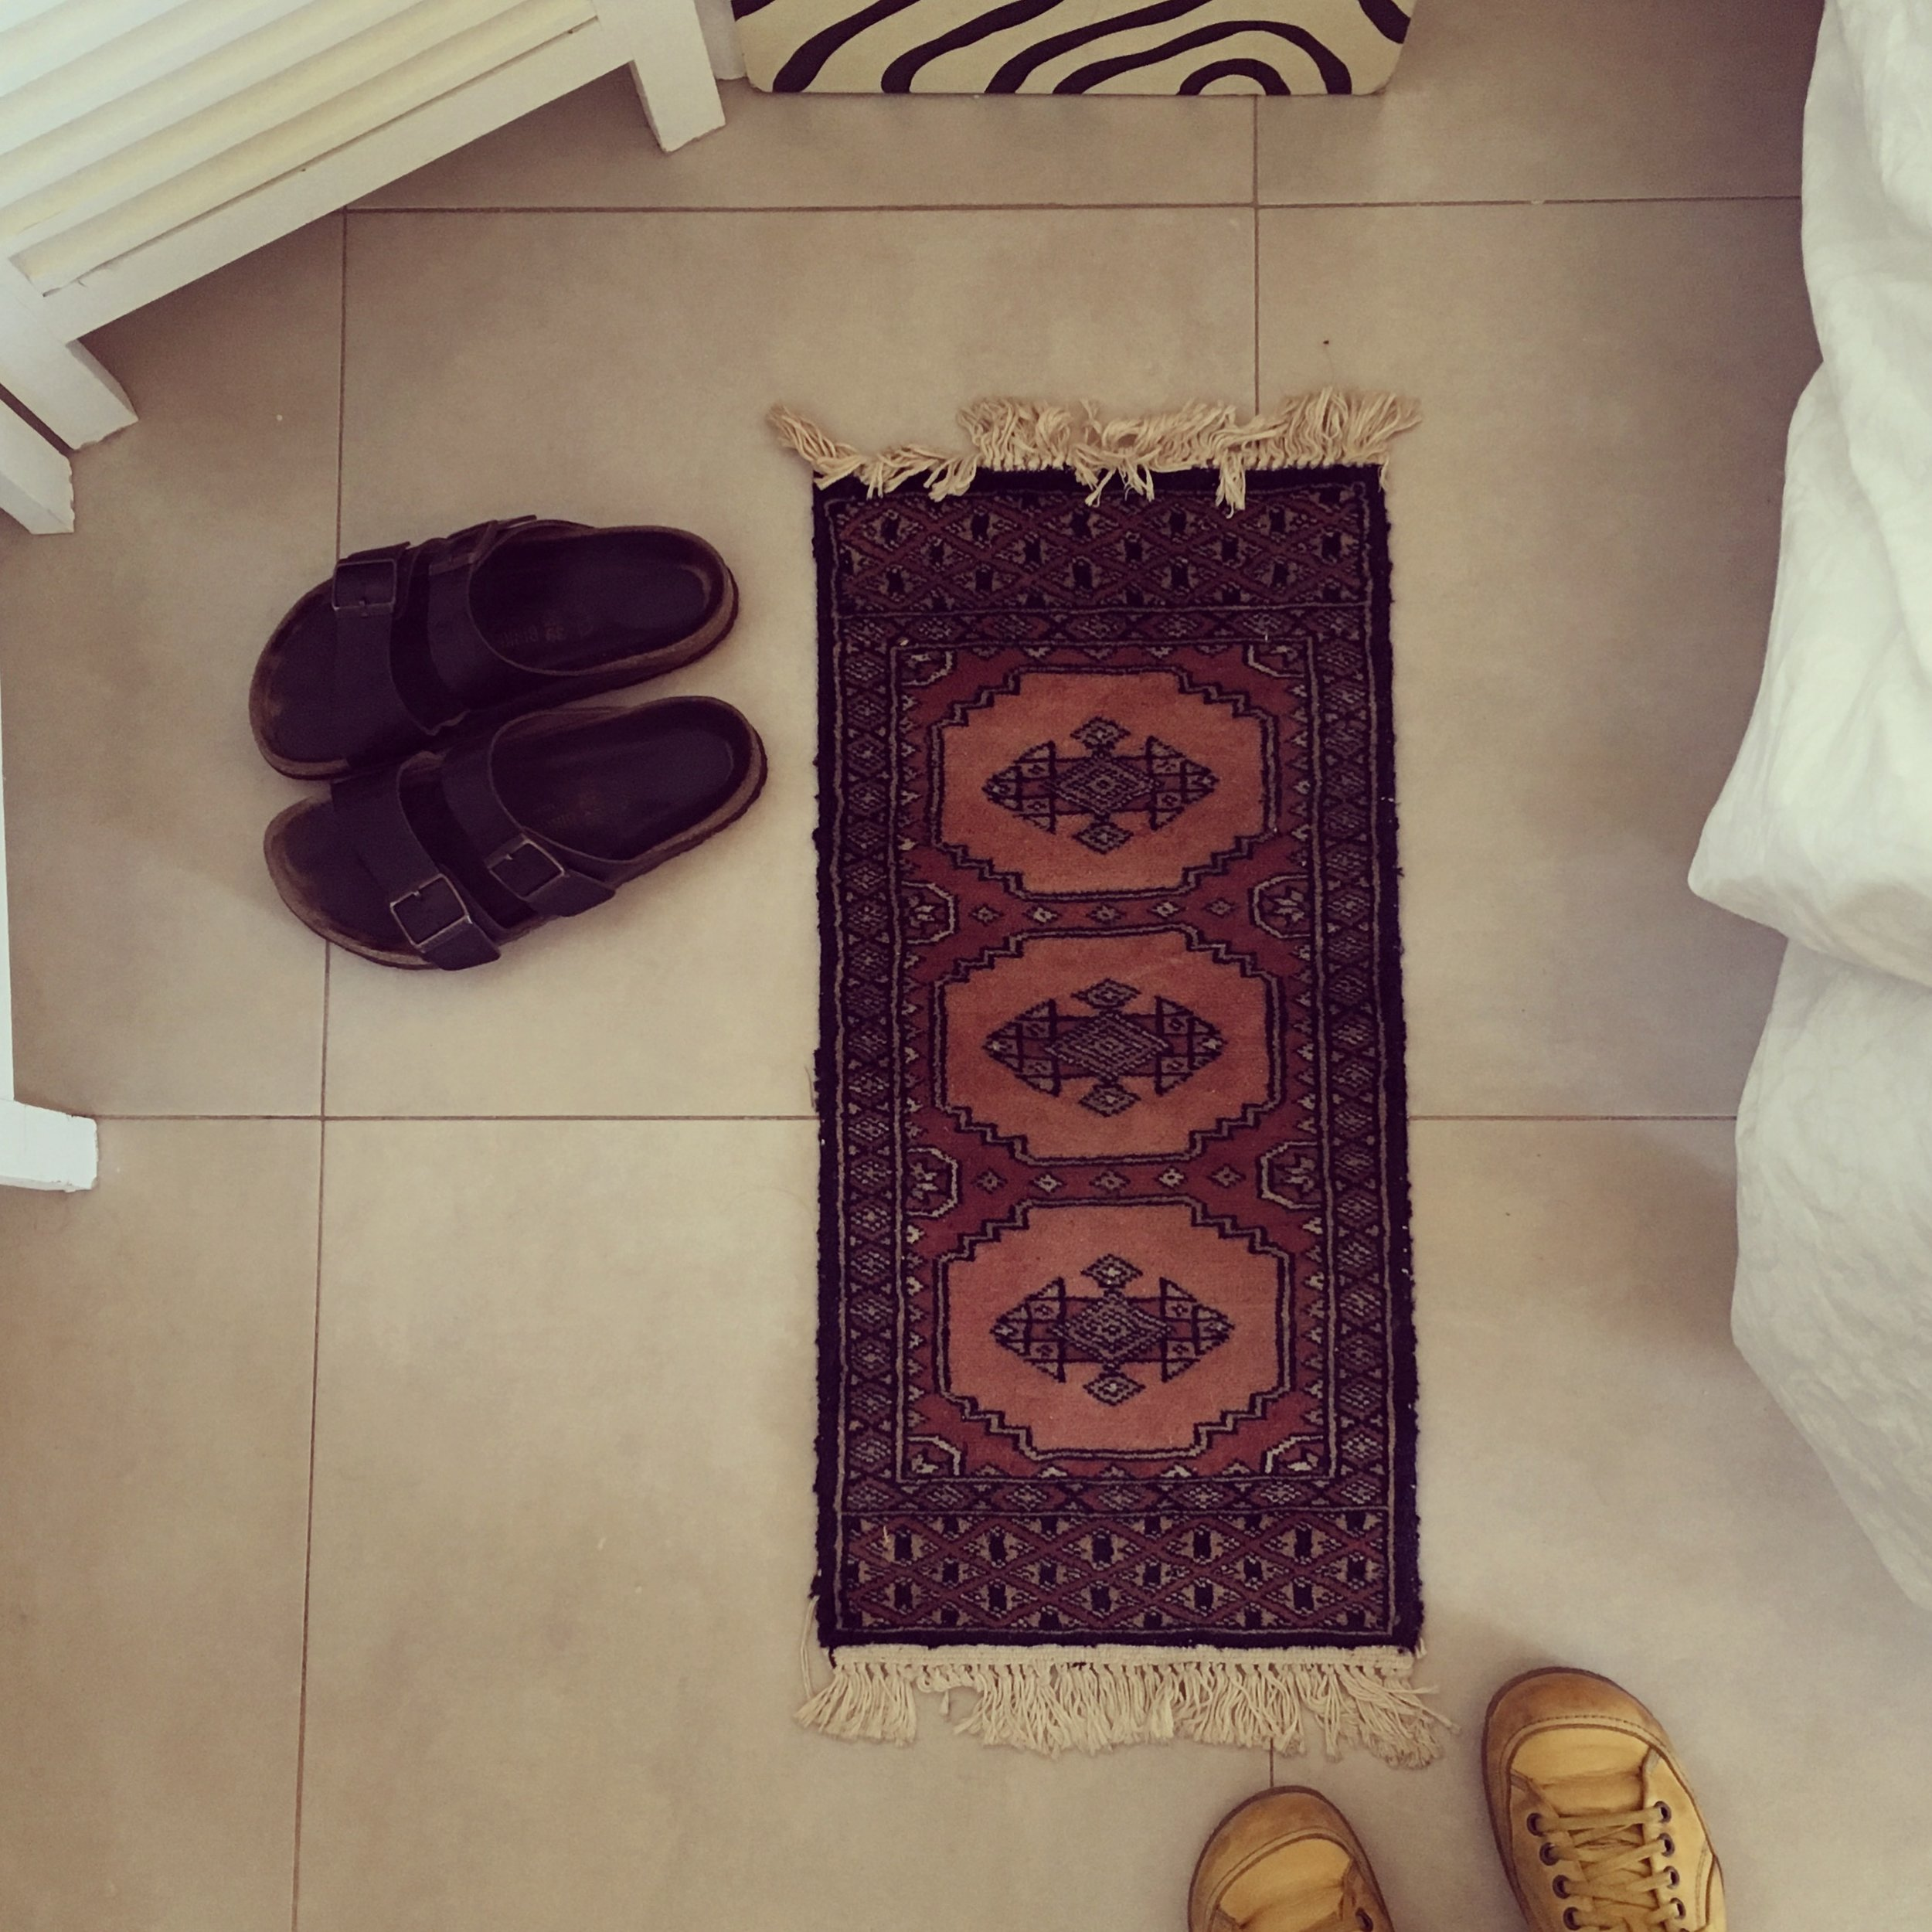 The rug, my sandals, and me in my travelling shoes across from the water in Sitges, Spain.